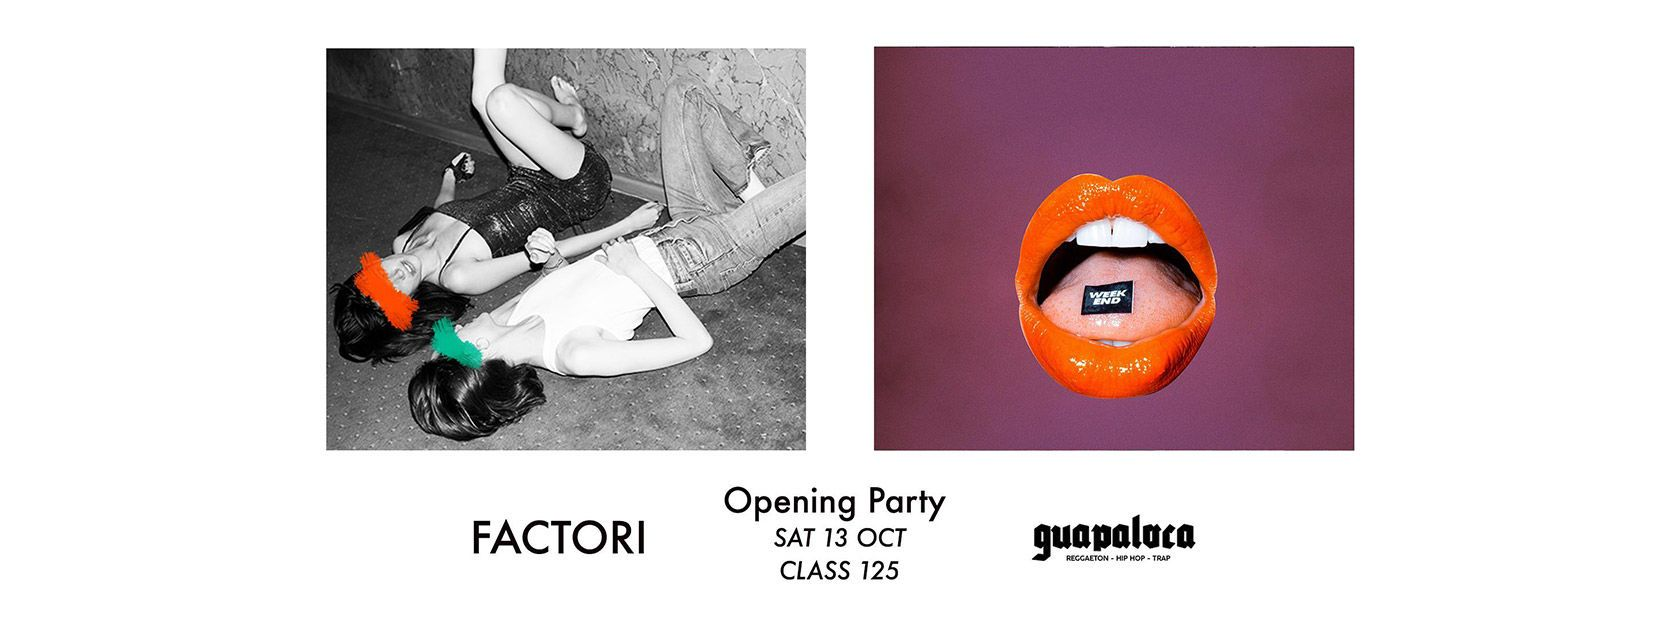 Class 125 - Factori and Guapaloca - Opening Party